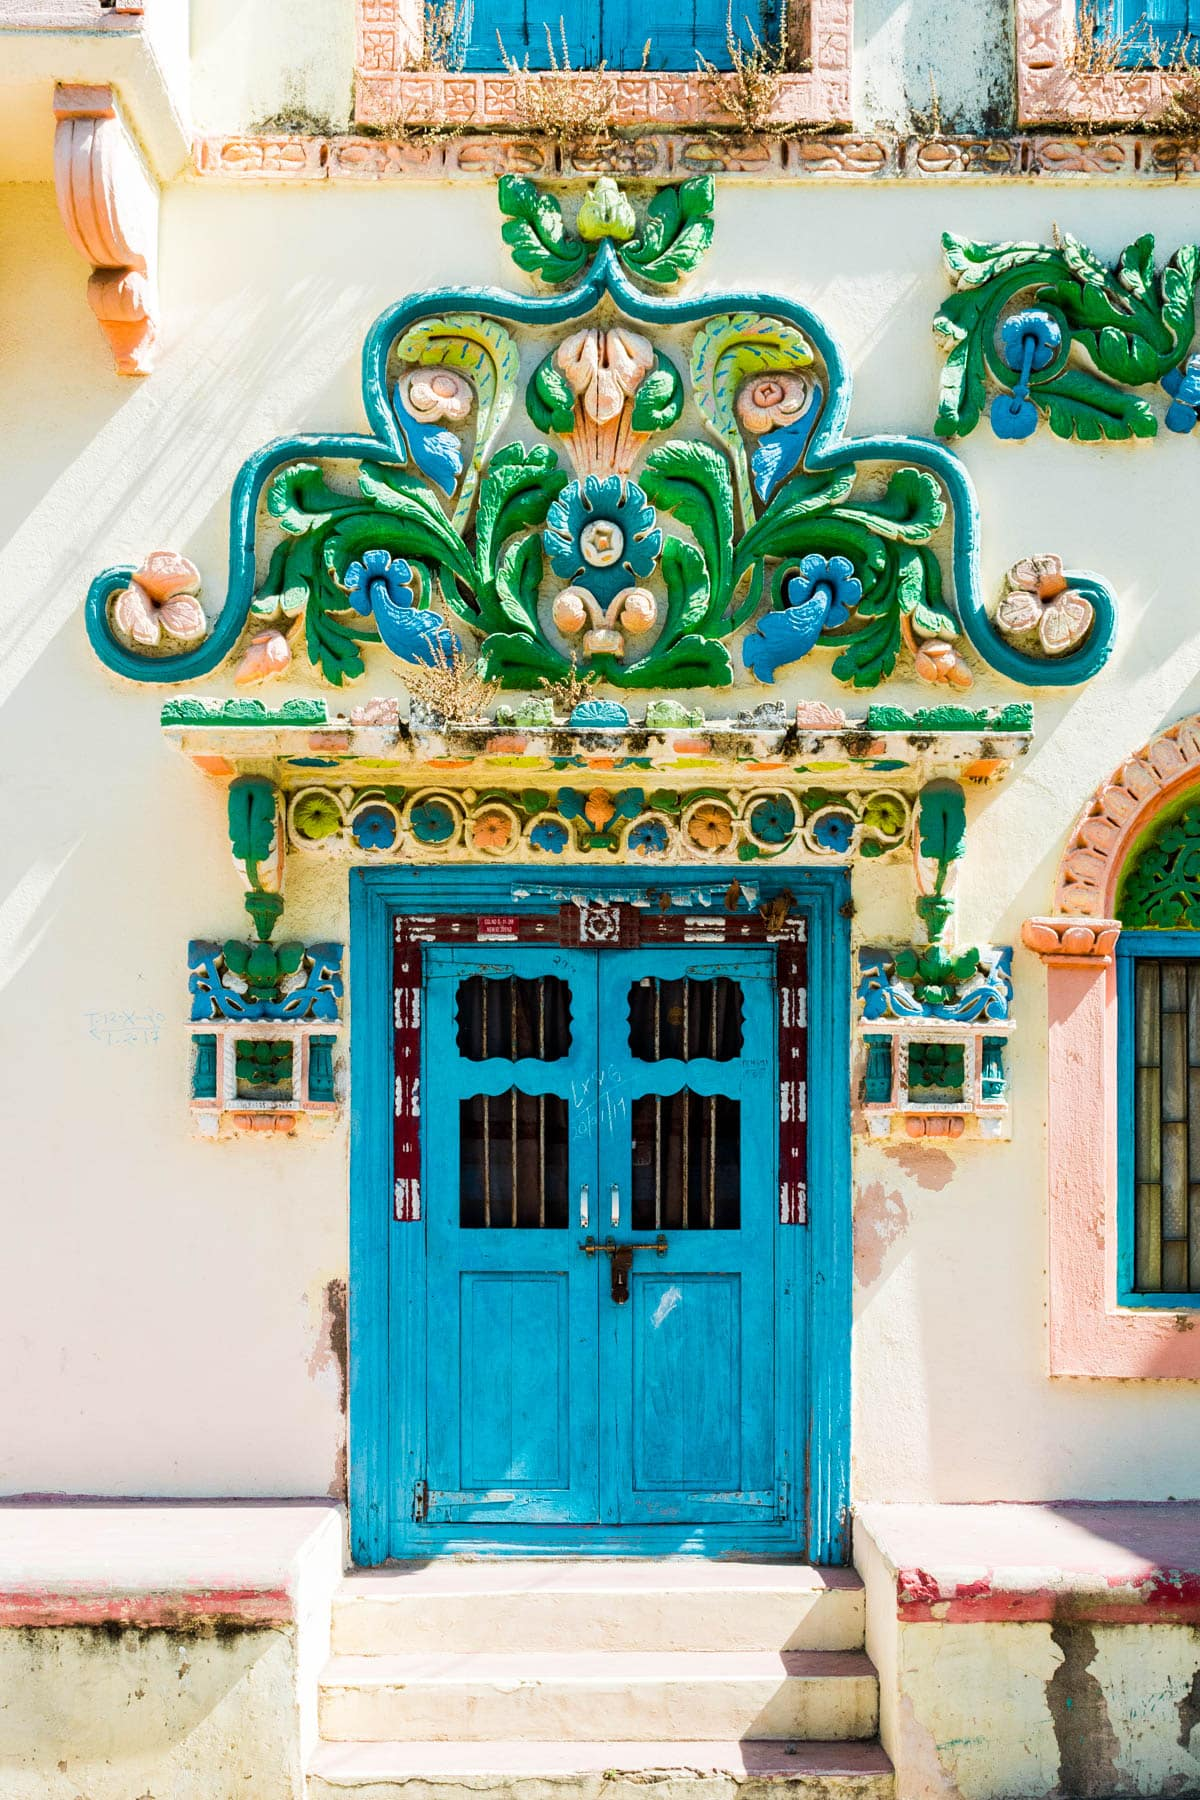 Diu, an island off the west coast of India, is filled with colorful doors and pretty Portuguese architecture. It's the perfect place to spend a few days relaxing and getting away from the chaos of India.